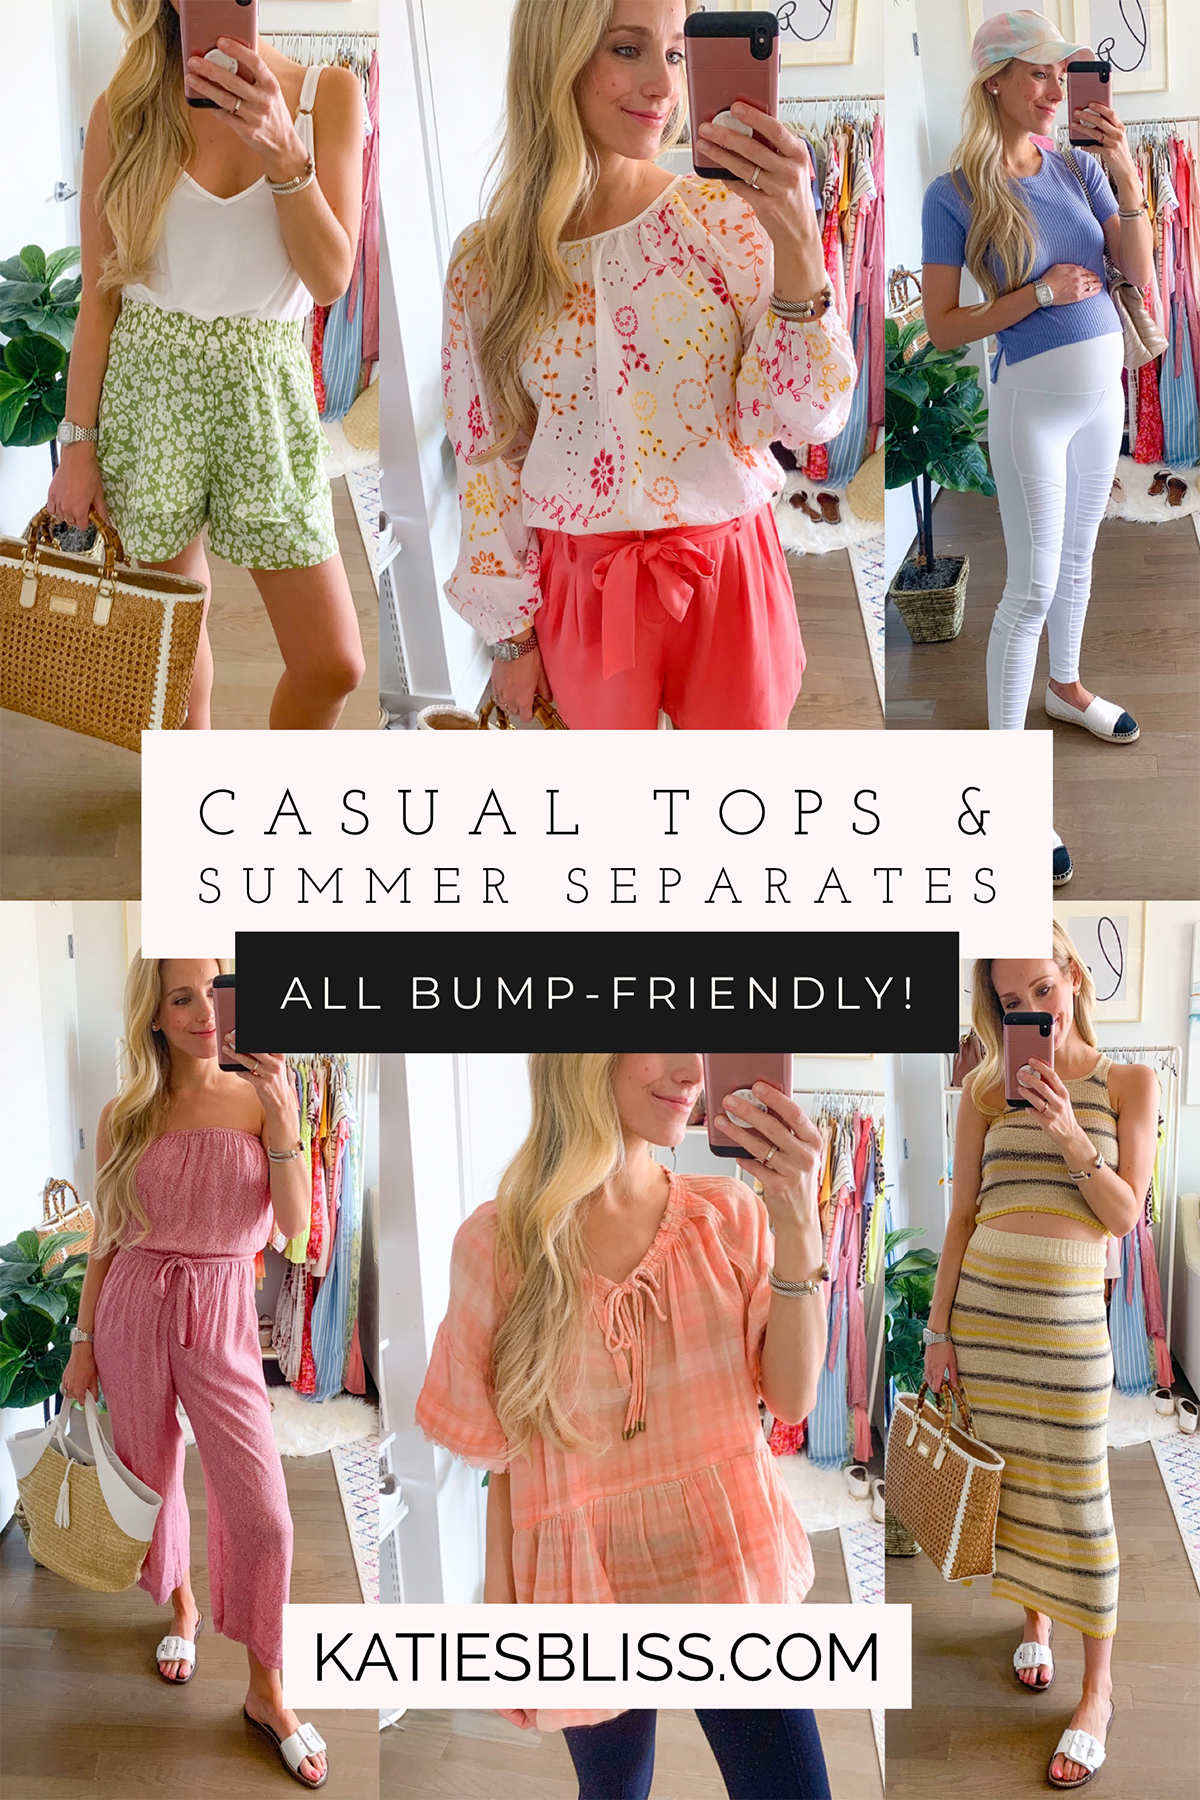 Katies Bliss Summer Tops and Separates